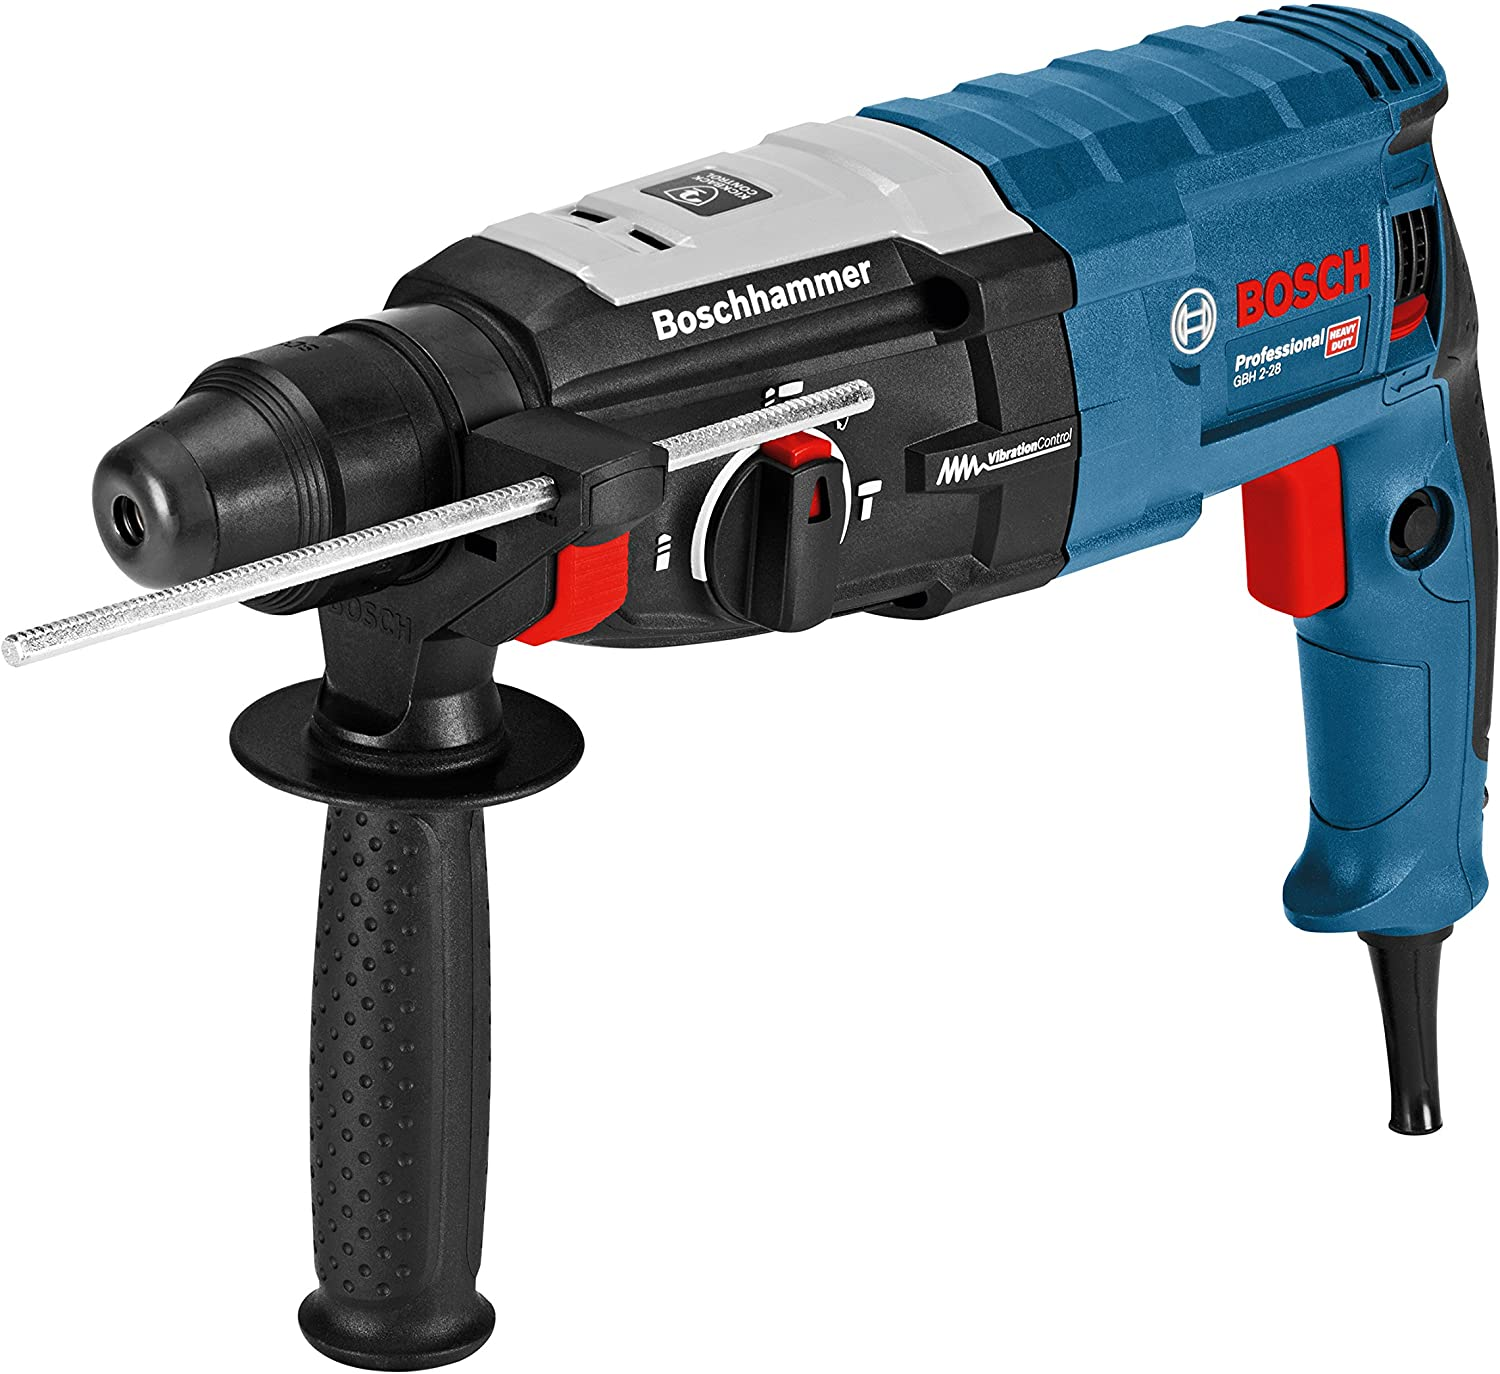 Bosch GBH 2-28 Professional rotary hammers SDS Plus 4000 RPM 880 W